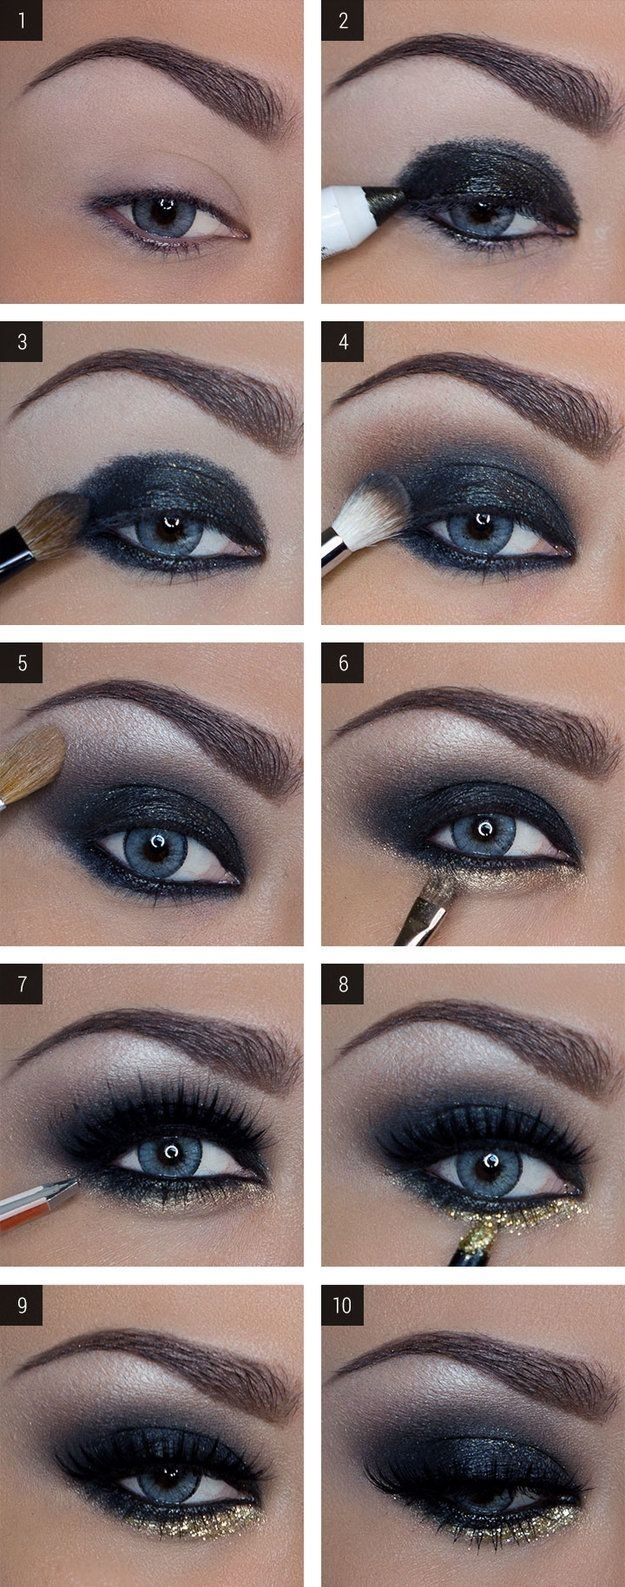 Lovely Makeup Tutorials For Blue Eyes | Make Up | Pinterest | Makeup inside How To Do Dramatic Eye Makeup For Blue Eyes